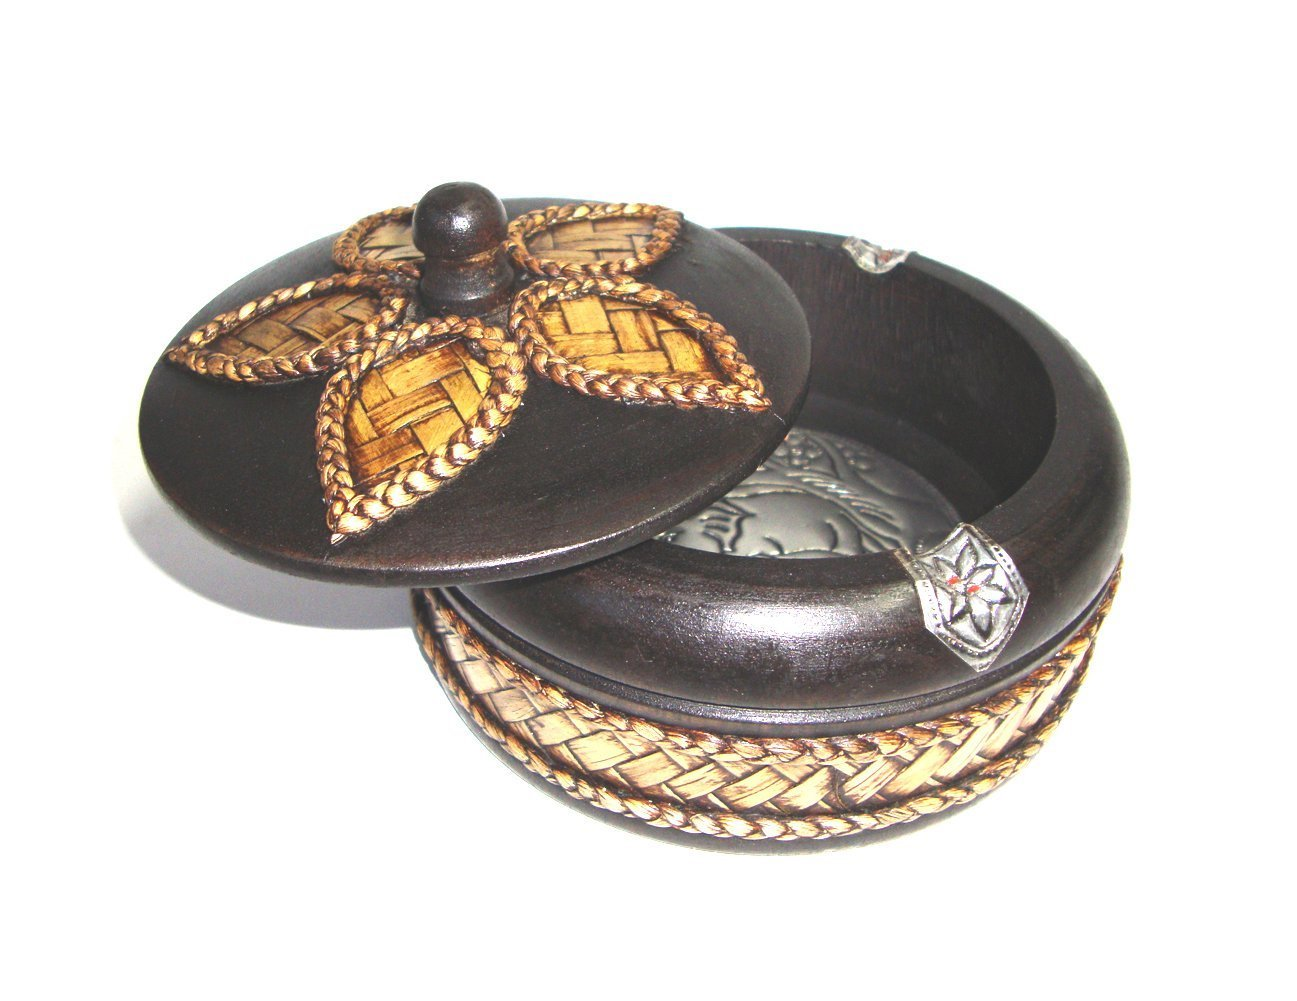 CONSERVE Thailand : Ashtray With lid, Thai Carved Handicraft Round Mango Wood Bamboo Weave Around. Size : 5 x 5 x 2.5 inches. By Brand by CONSERVE